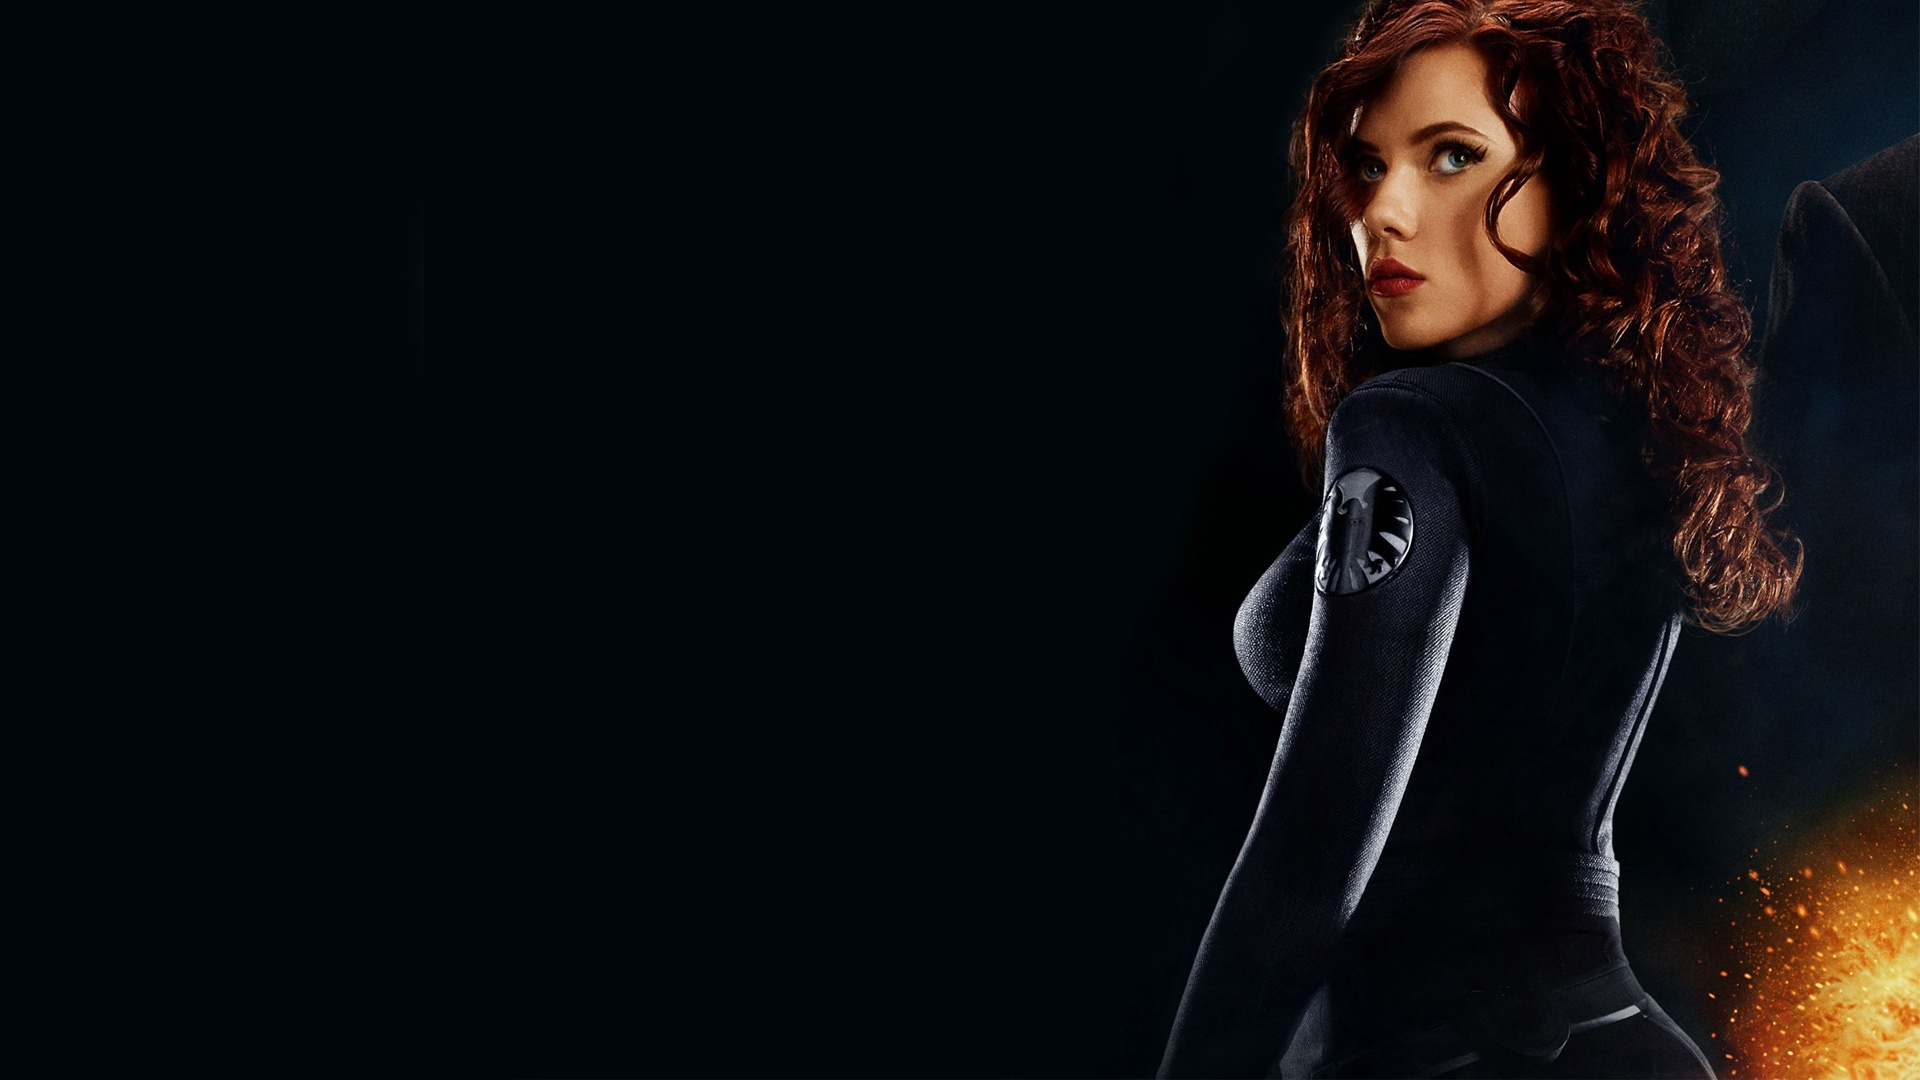 Free Download Johansson As Black Widow In Iron Man 2 Wallpapers Hd